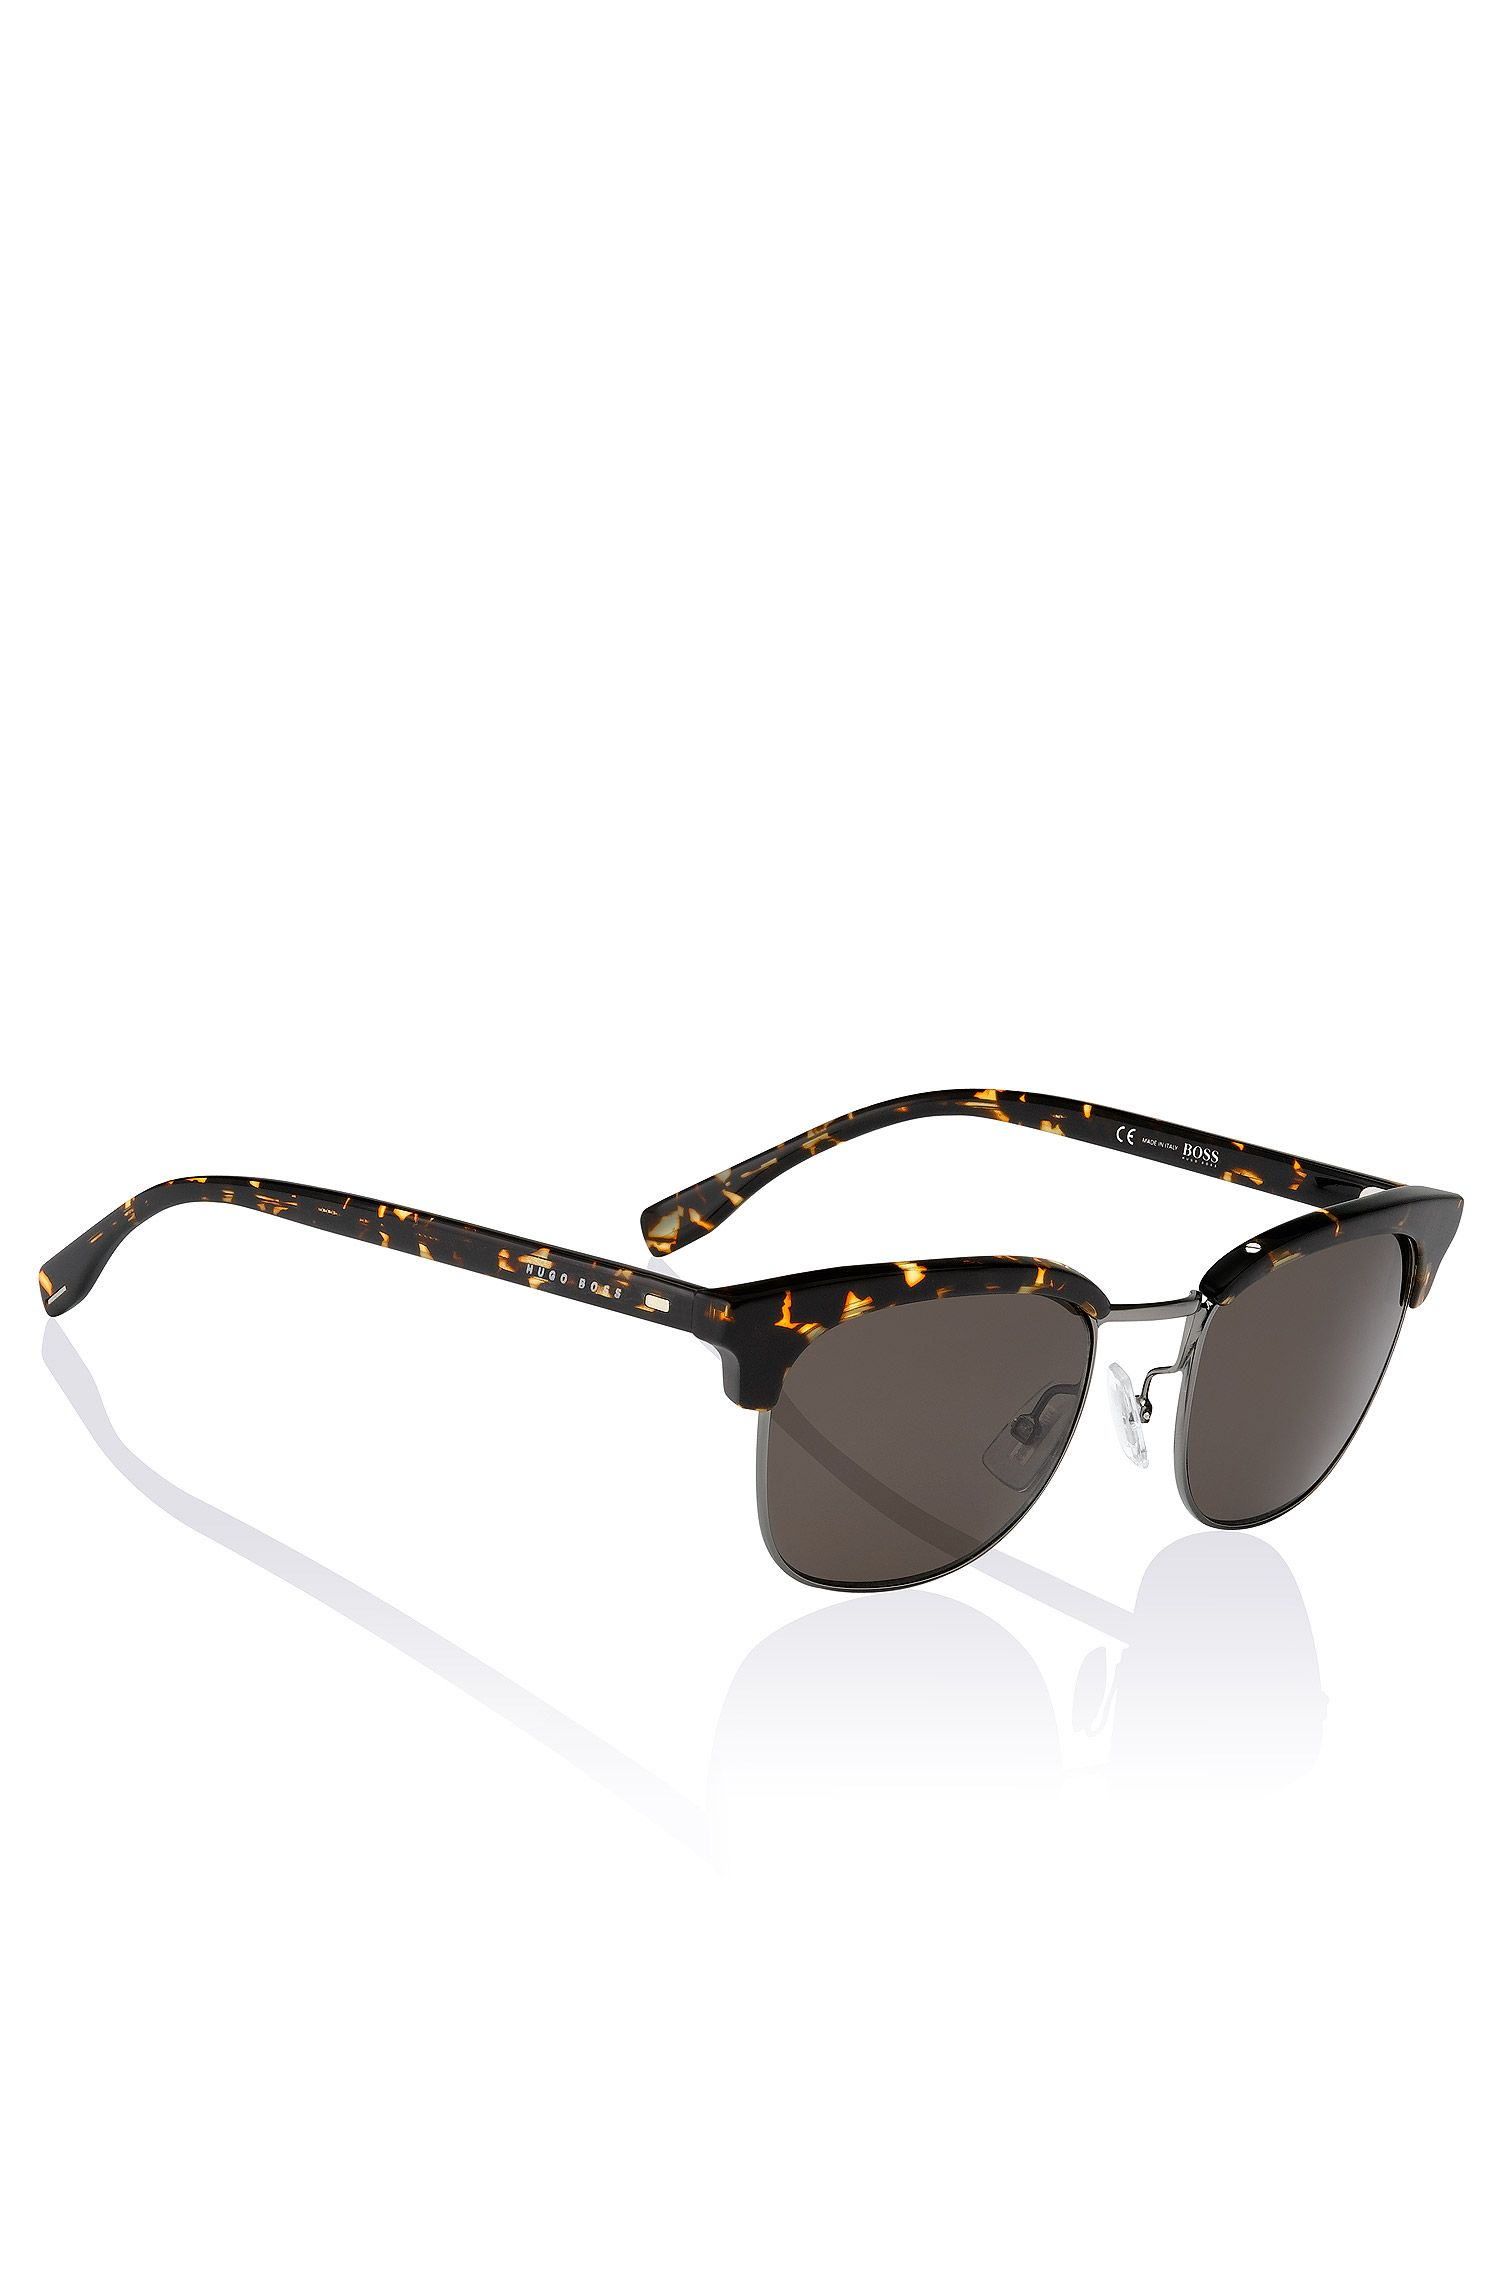 Clubmaster sunglasses 'BOSS 0667' in synthetic material and metal